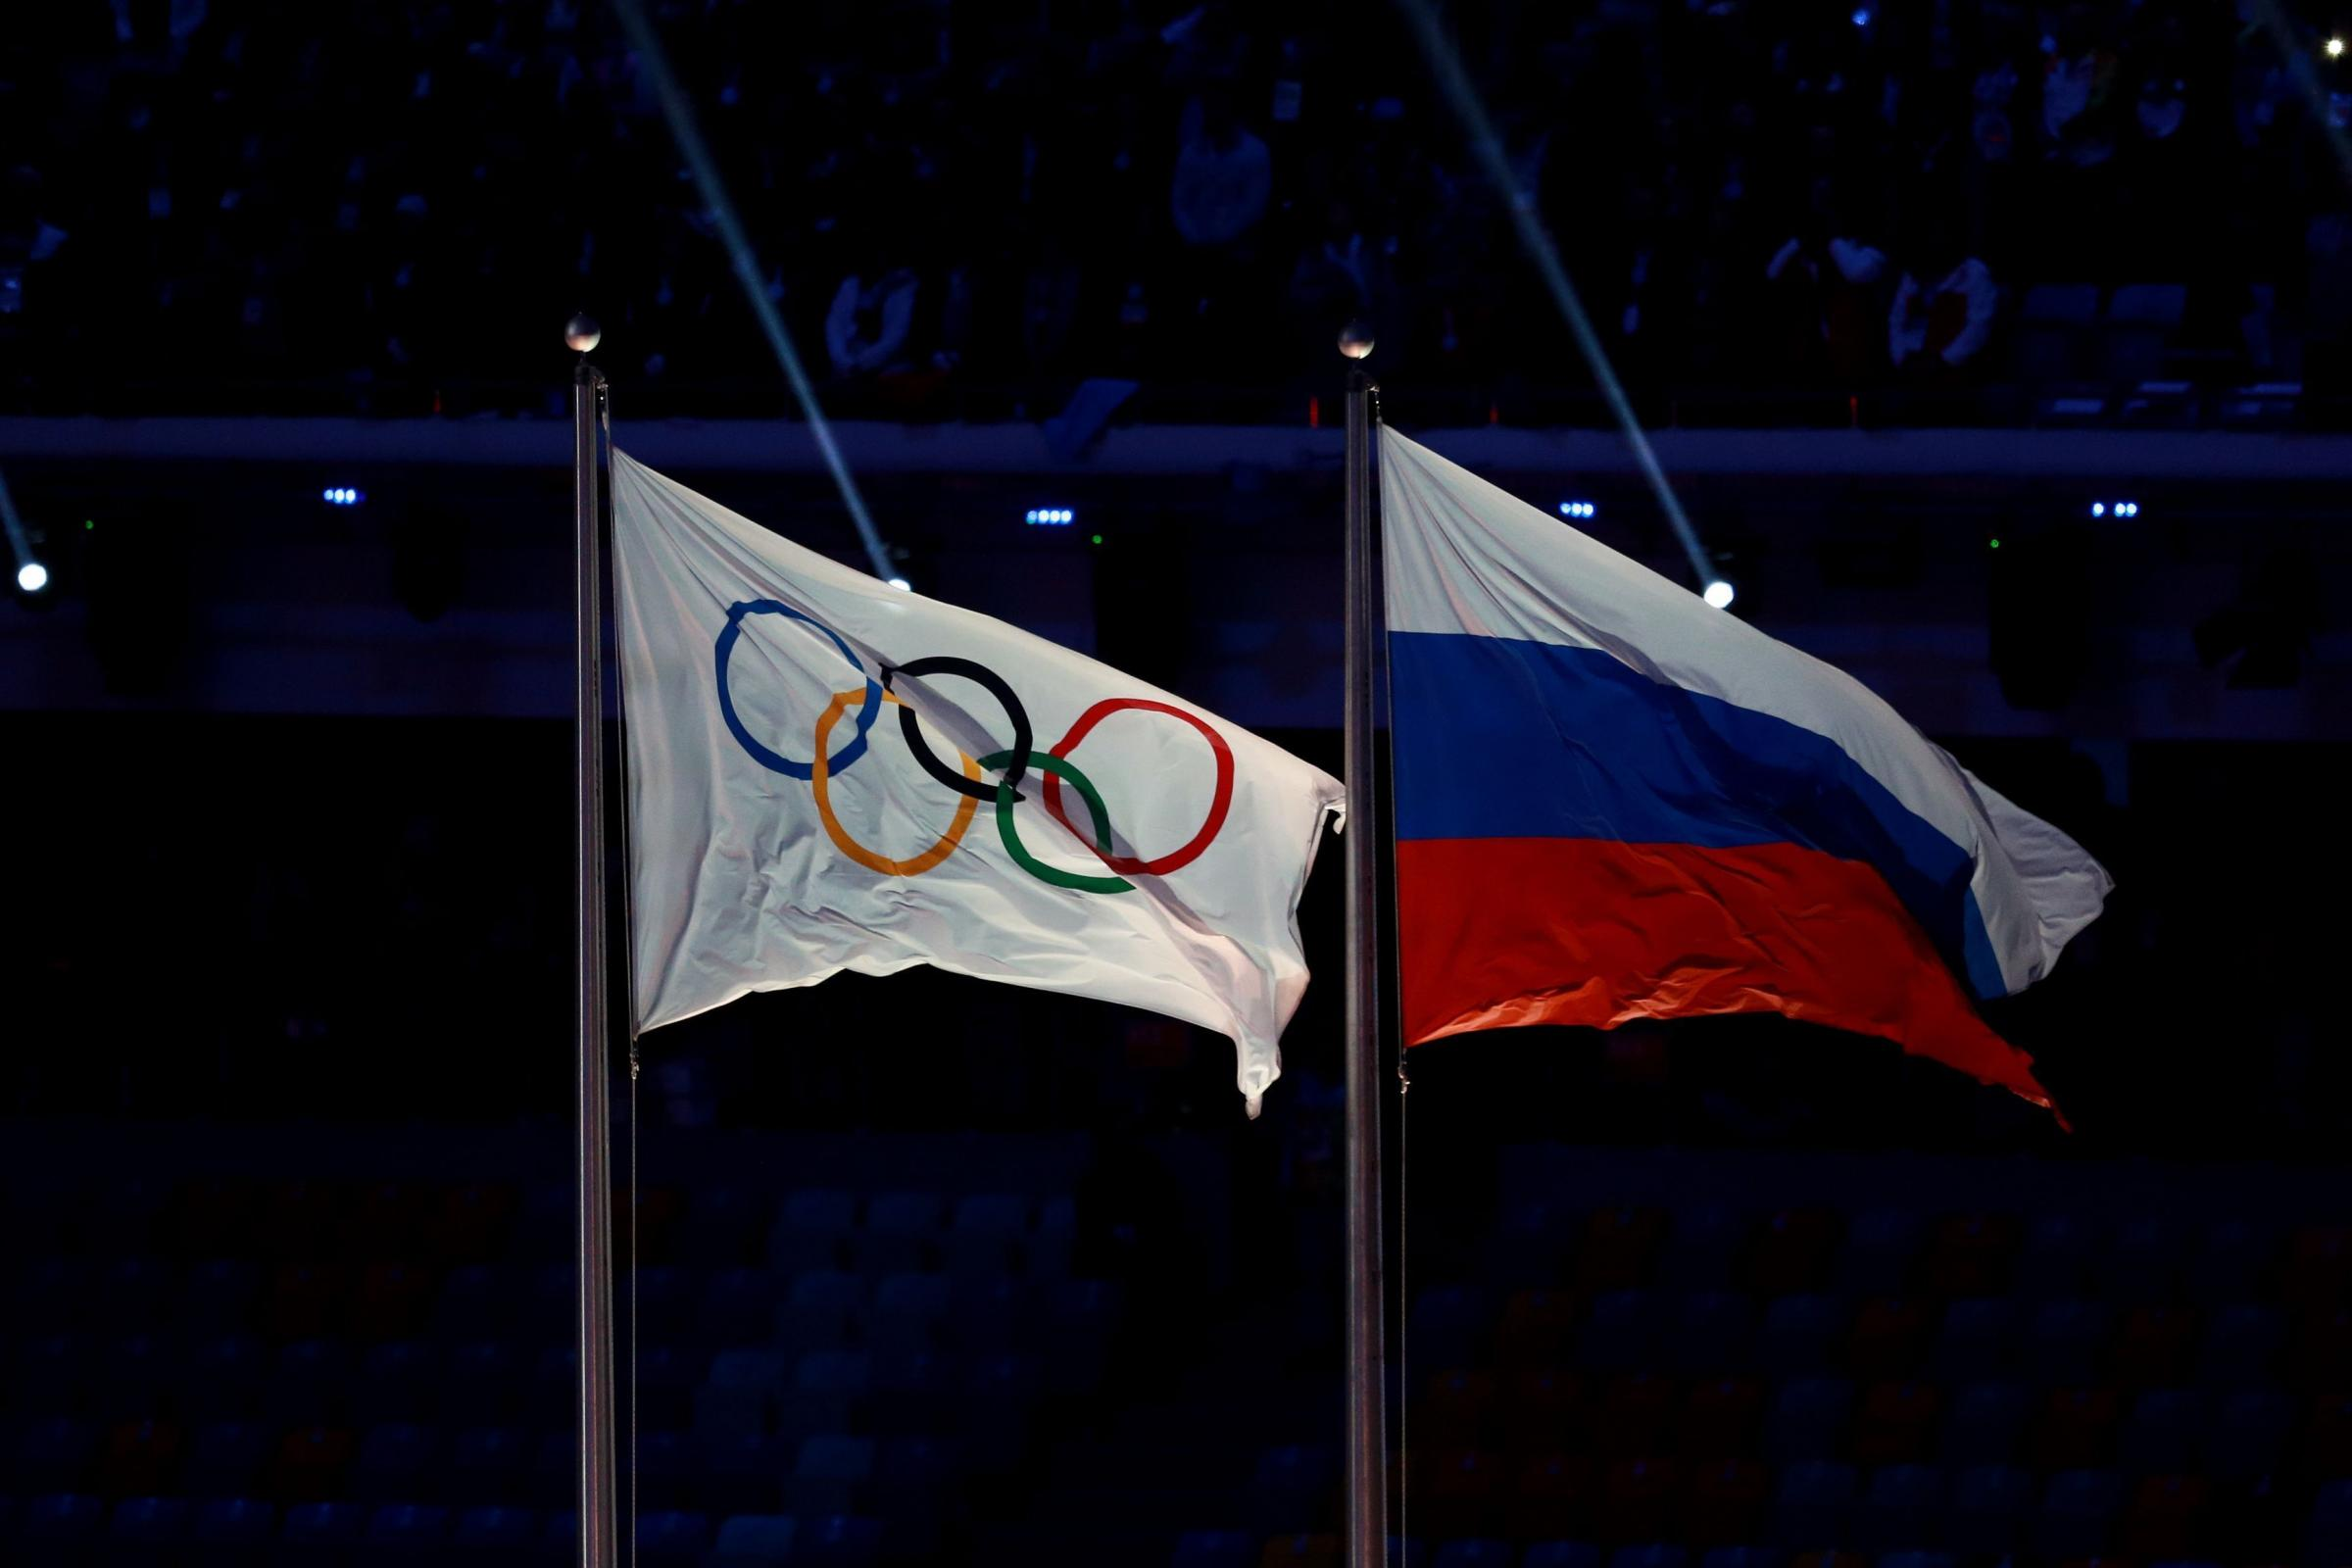 The Court of Arbitration for Sport will announce its decision on the participation of 47 athletes at the Winter Olympics nine hours before the opening ceremony (David Davies/PA Wire)